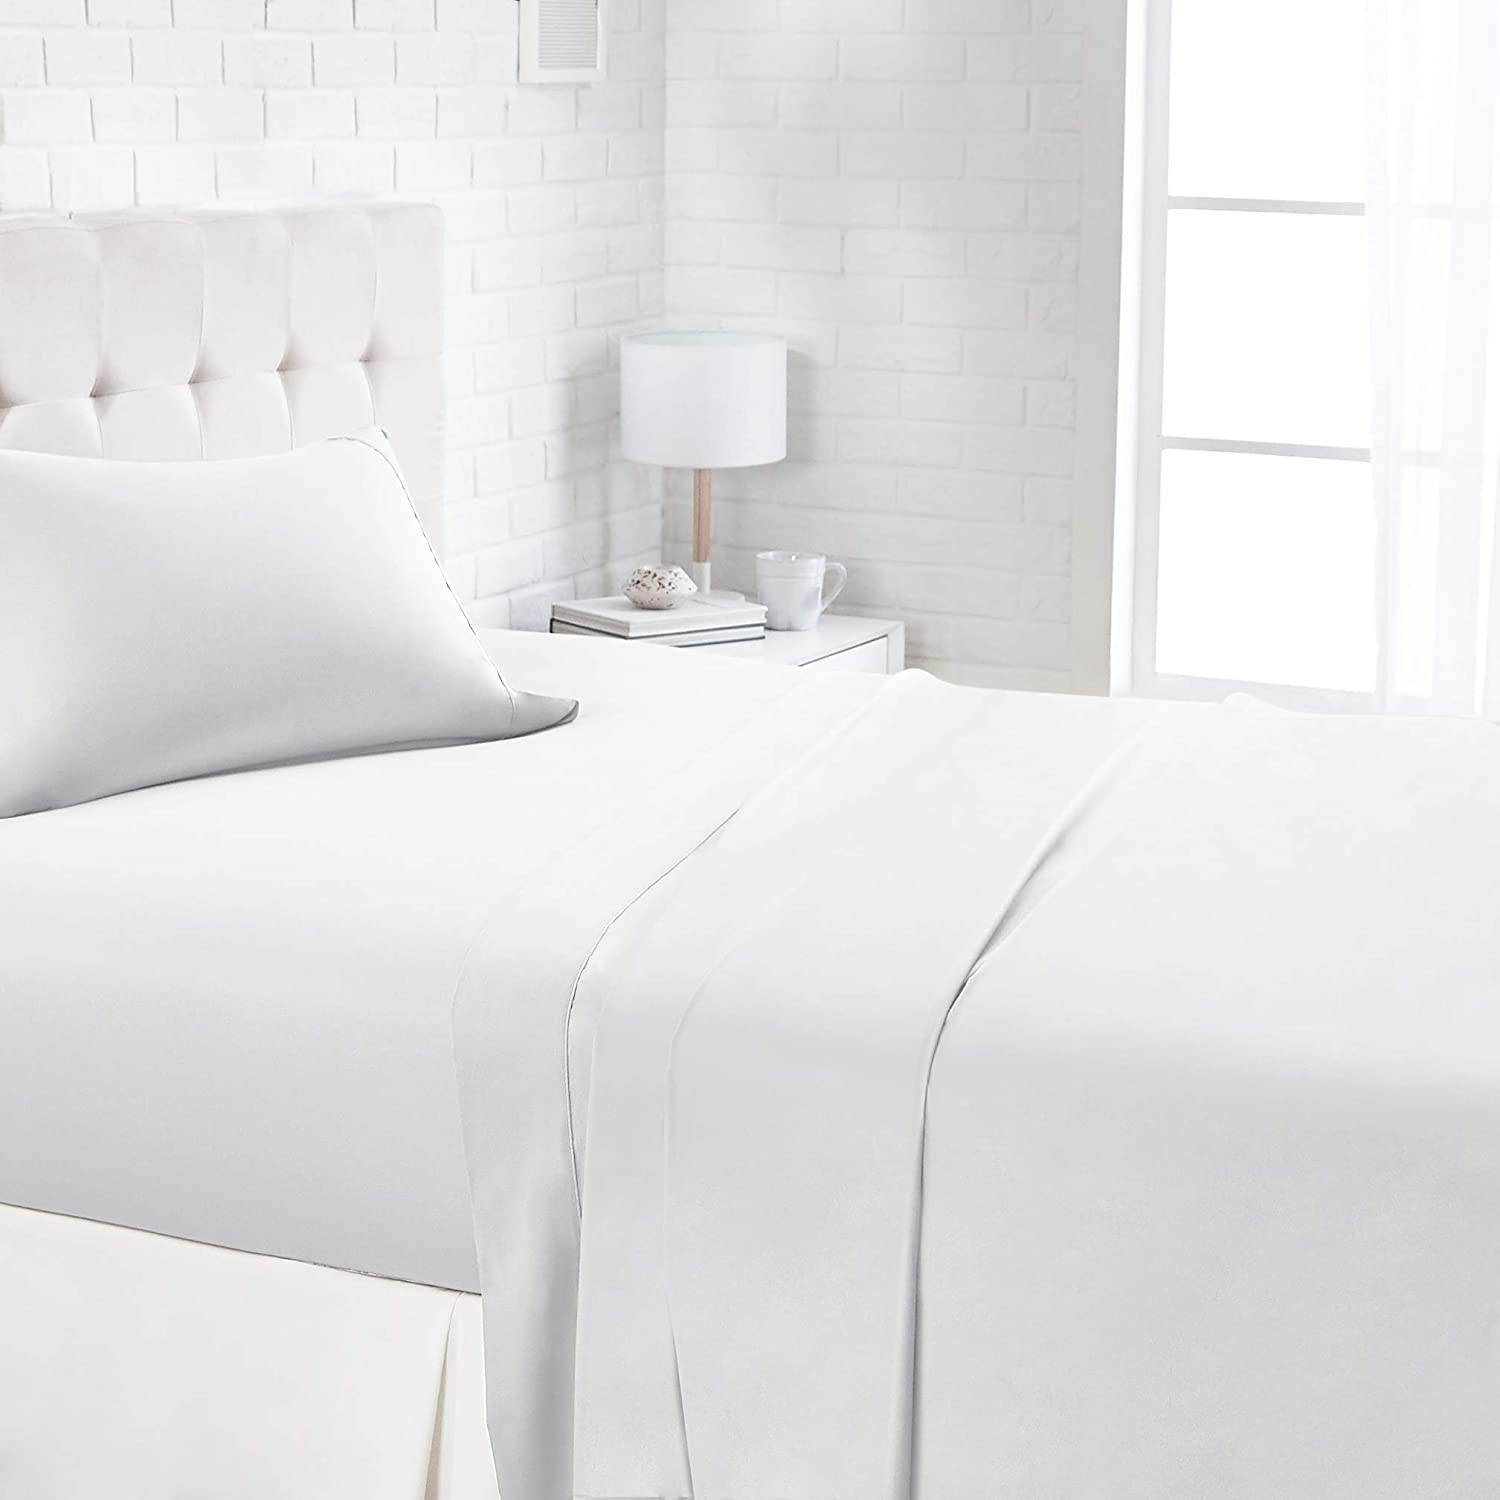 AmazonBasics 1100TC Luxury Easycare Sheet Set - Full, White